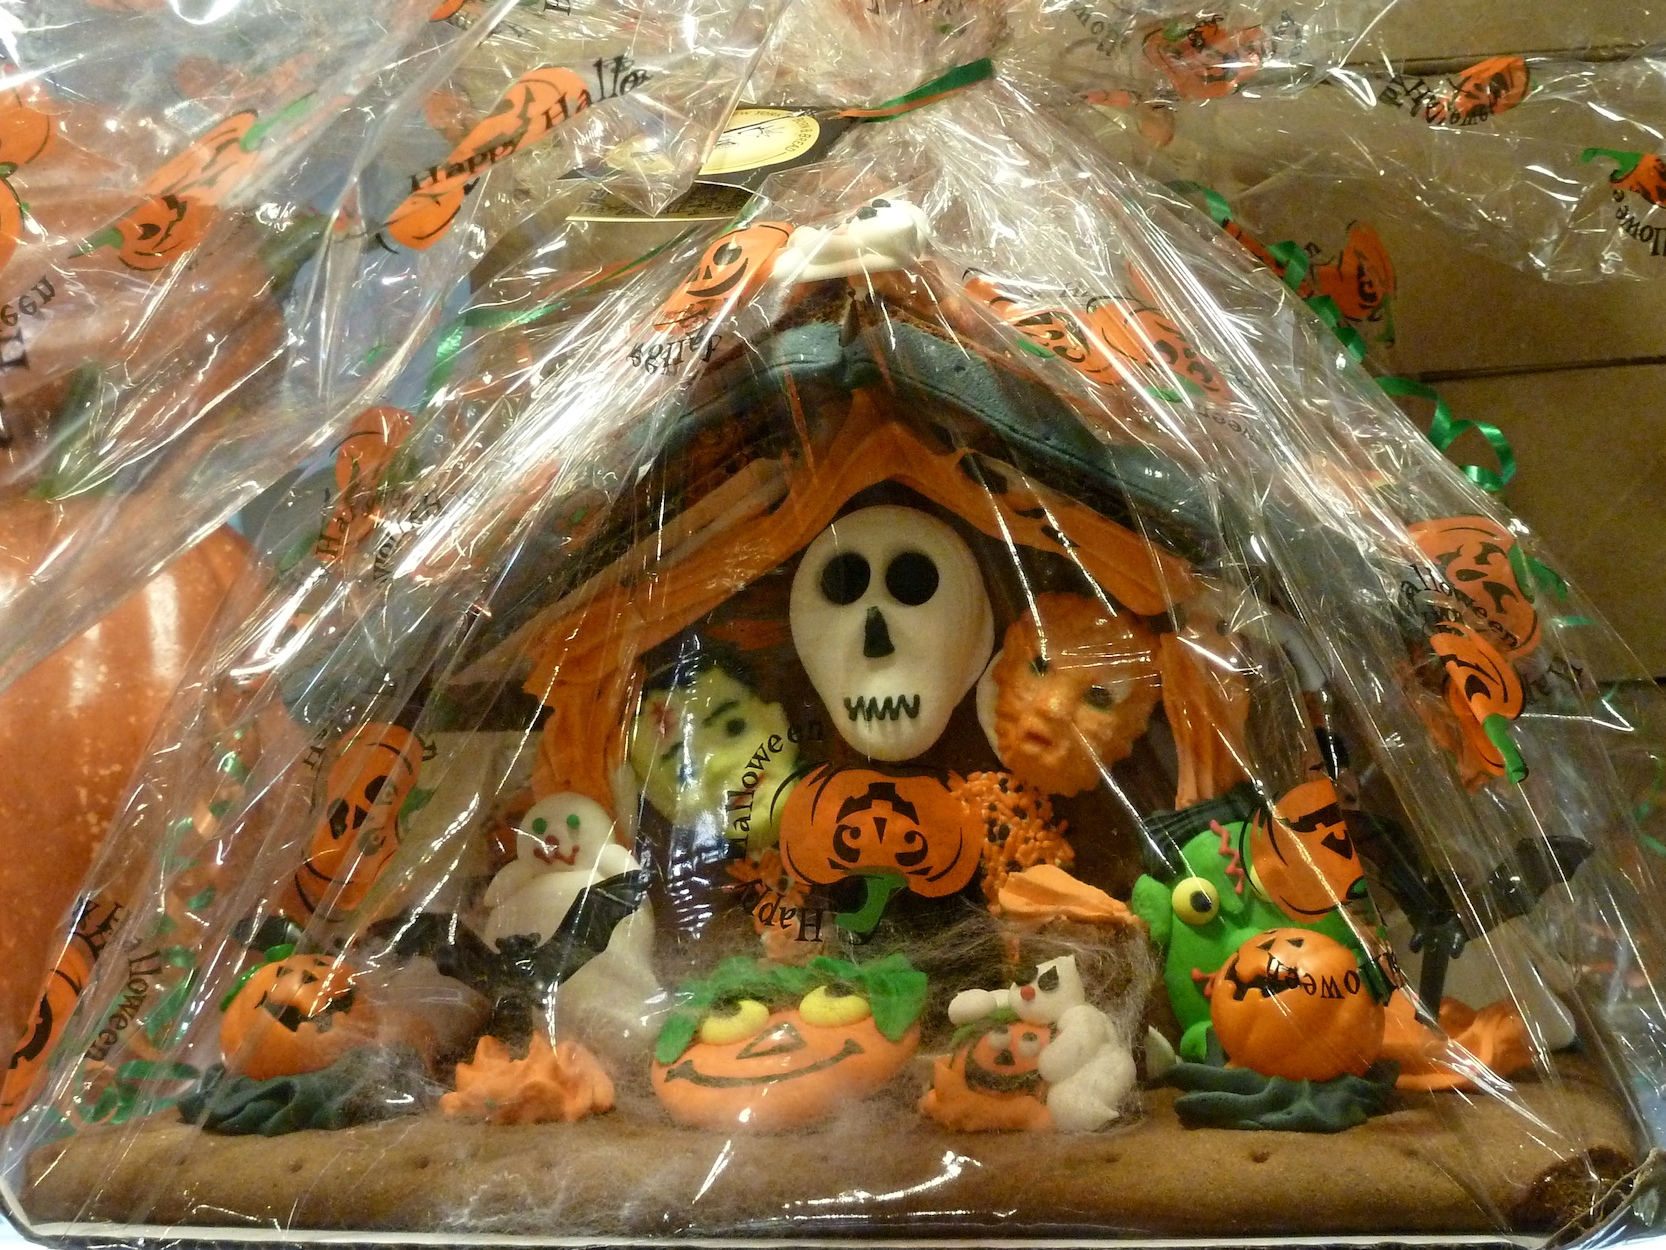 The gingerbread house is not just for Christmas, decorated Halloween house in New York's Grand Central station